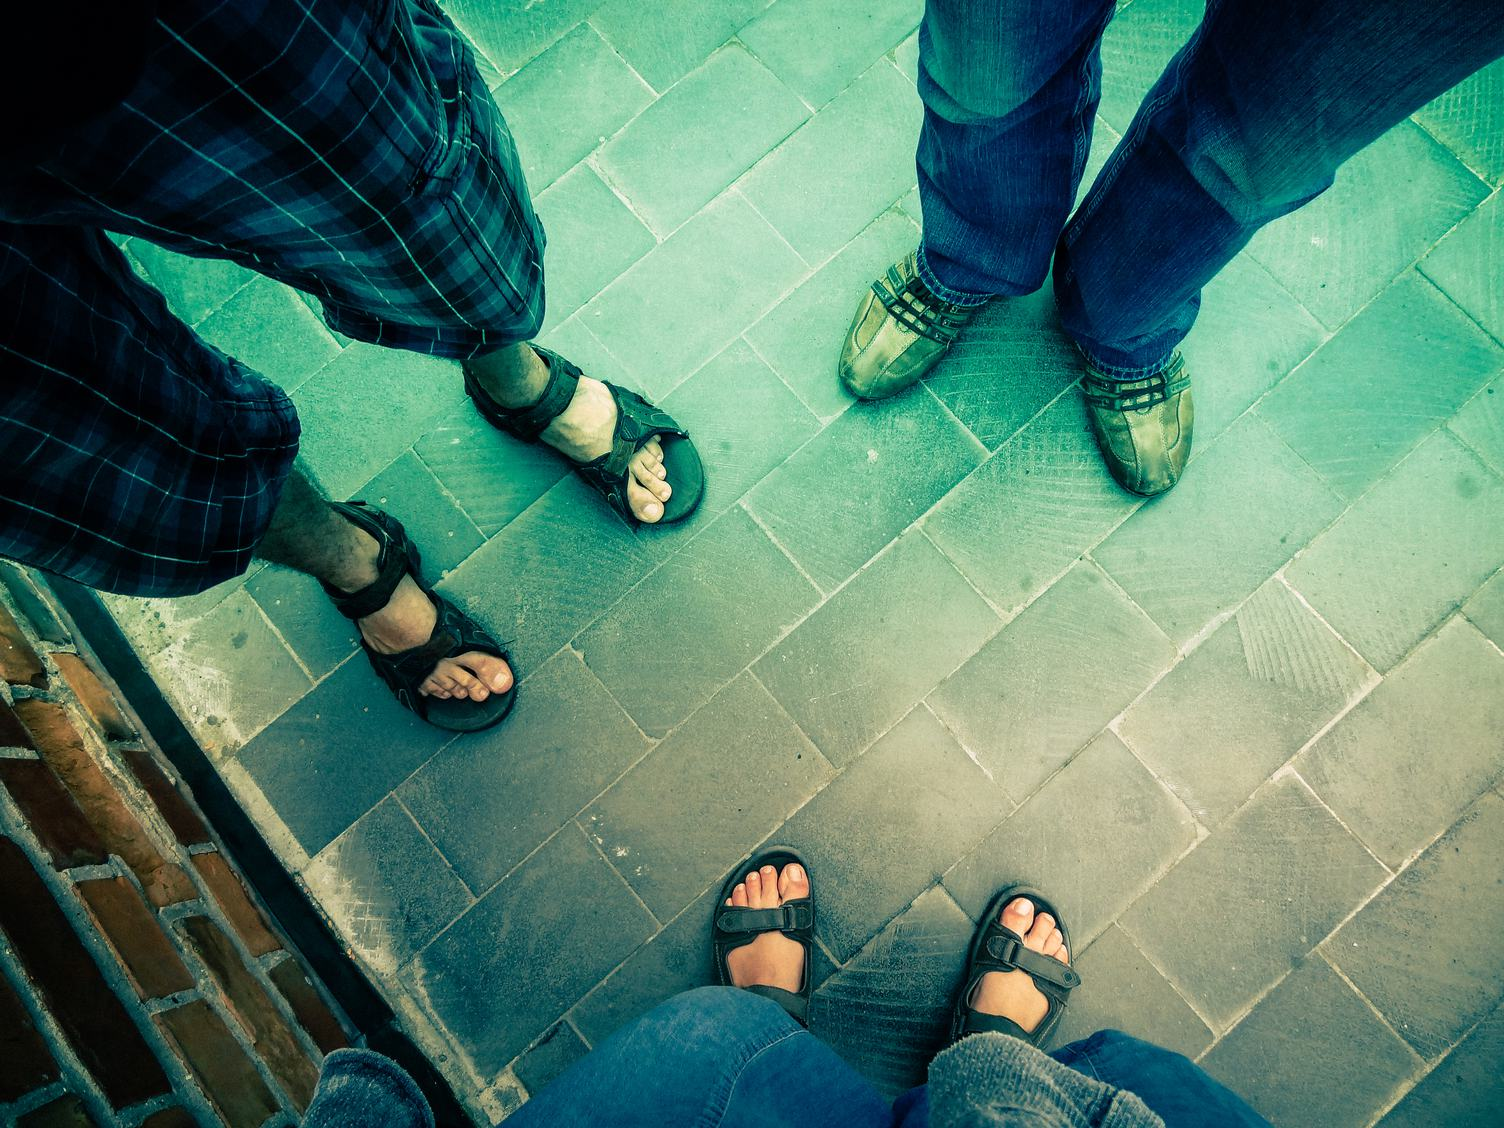 Foot and Legs of Three People Seen from above